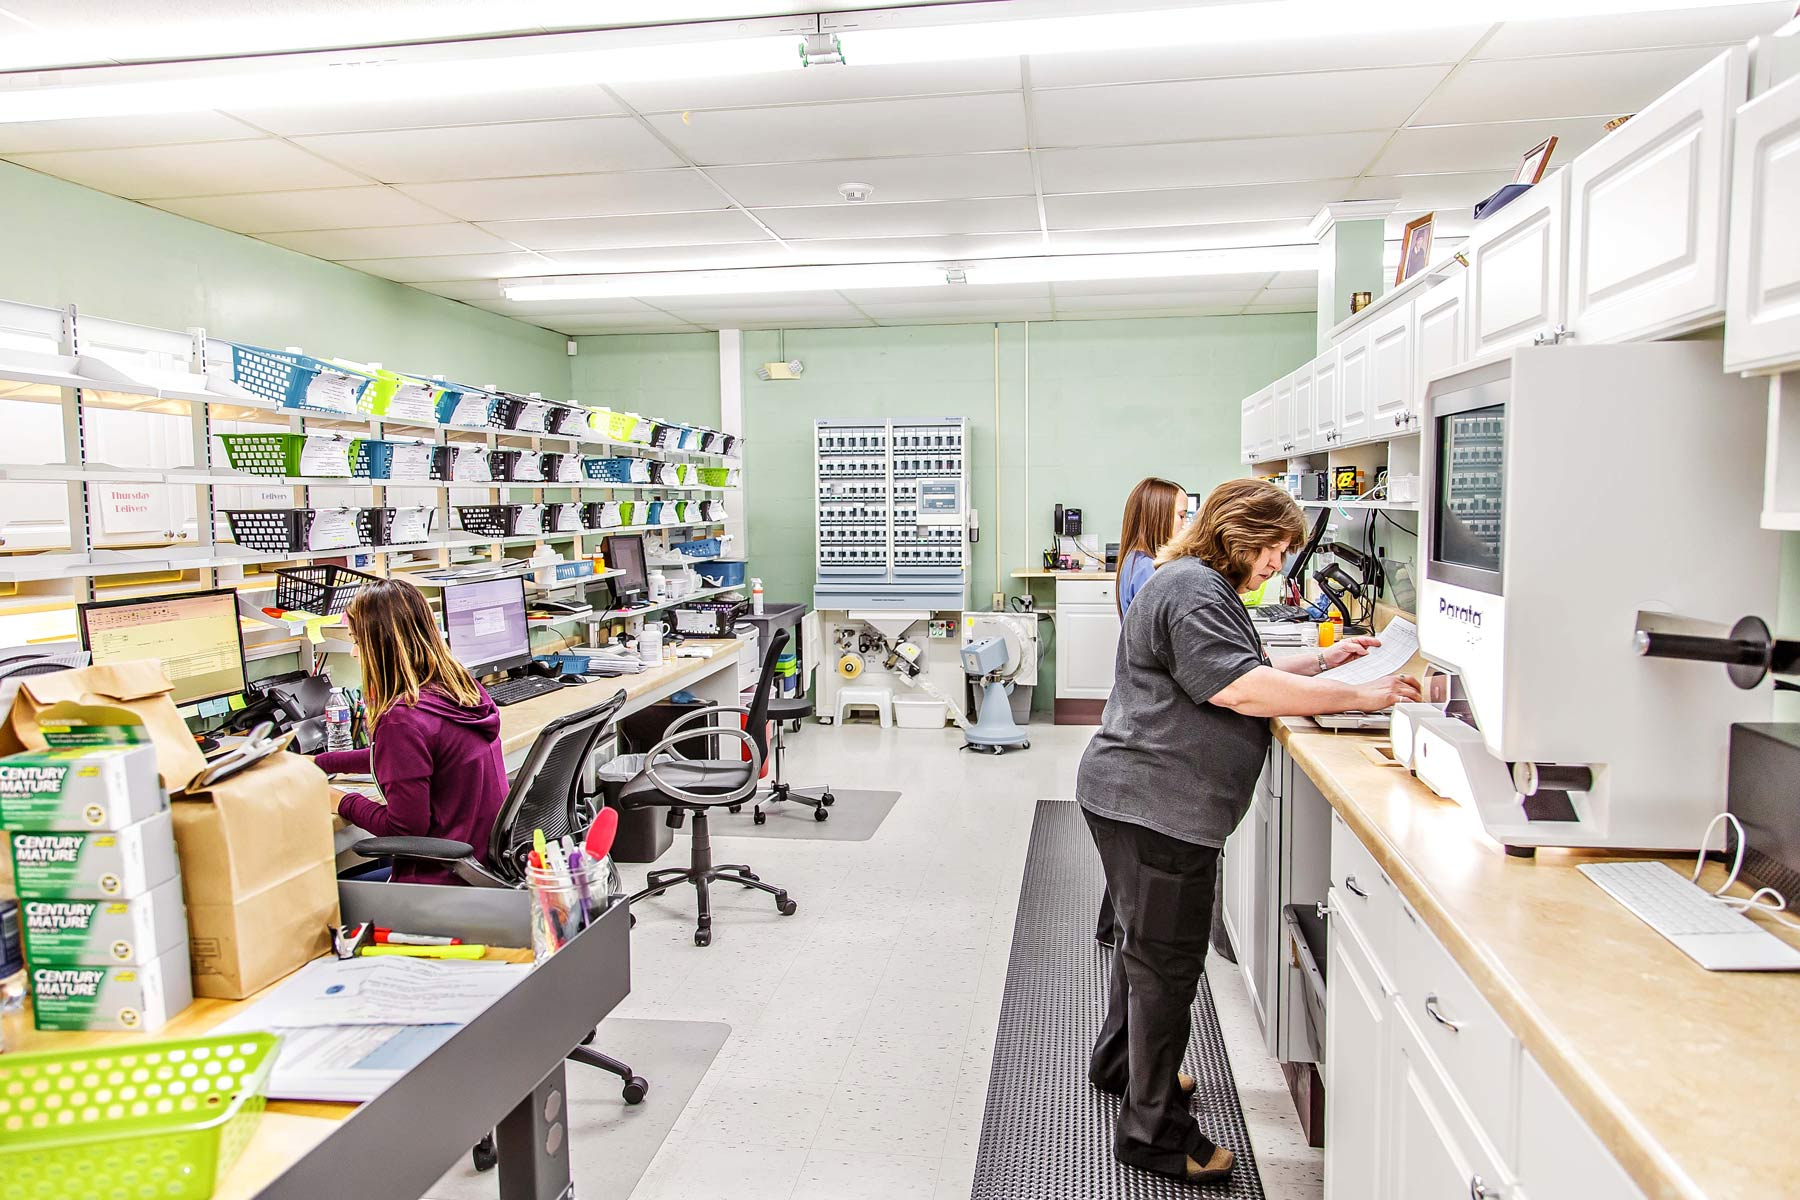 Wolfe's team works on fulfilling prescriptions for their patients